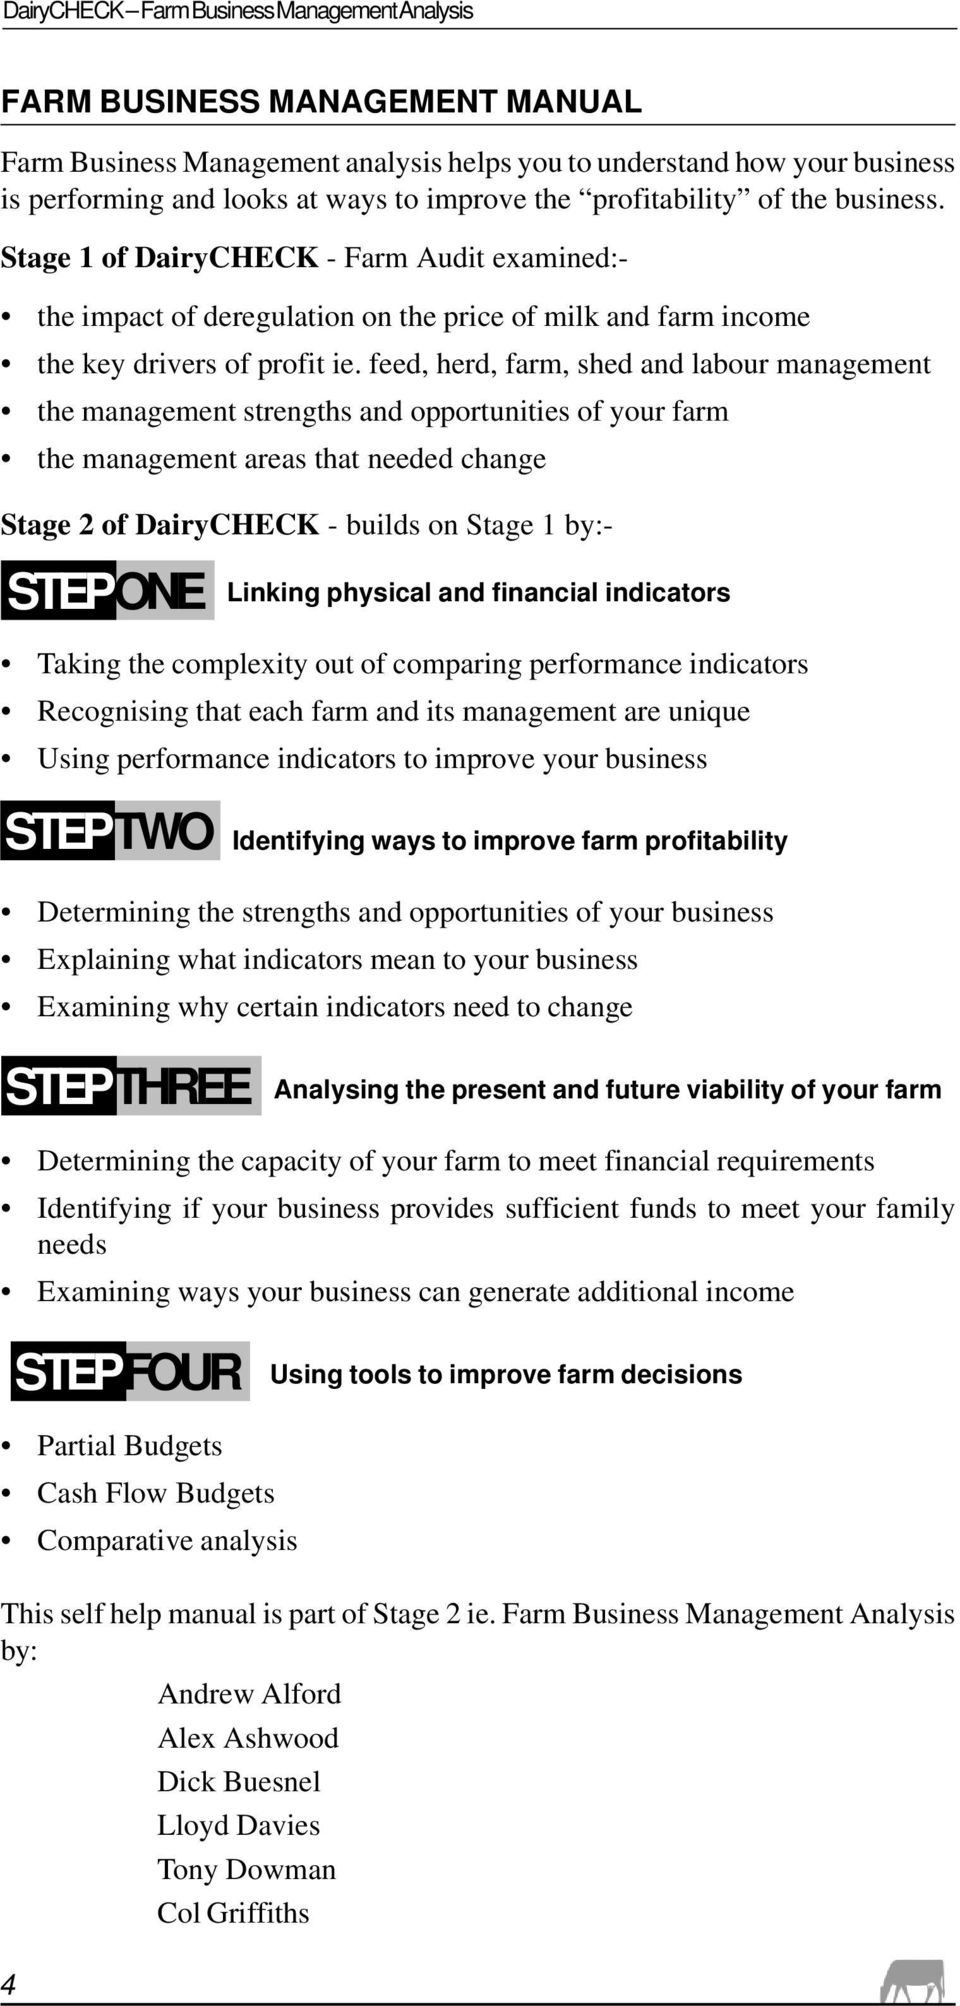 feed, herd, farm, shed and labour management the management strengths and opportunities of your farm the management areas that needed change Stage 2 of DairyCHECK - builds on Stage 1 by:- STEP ONE